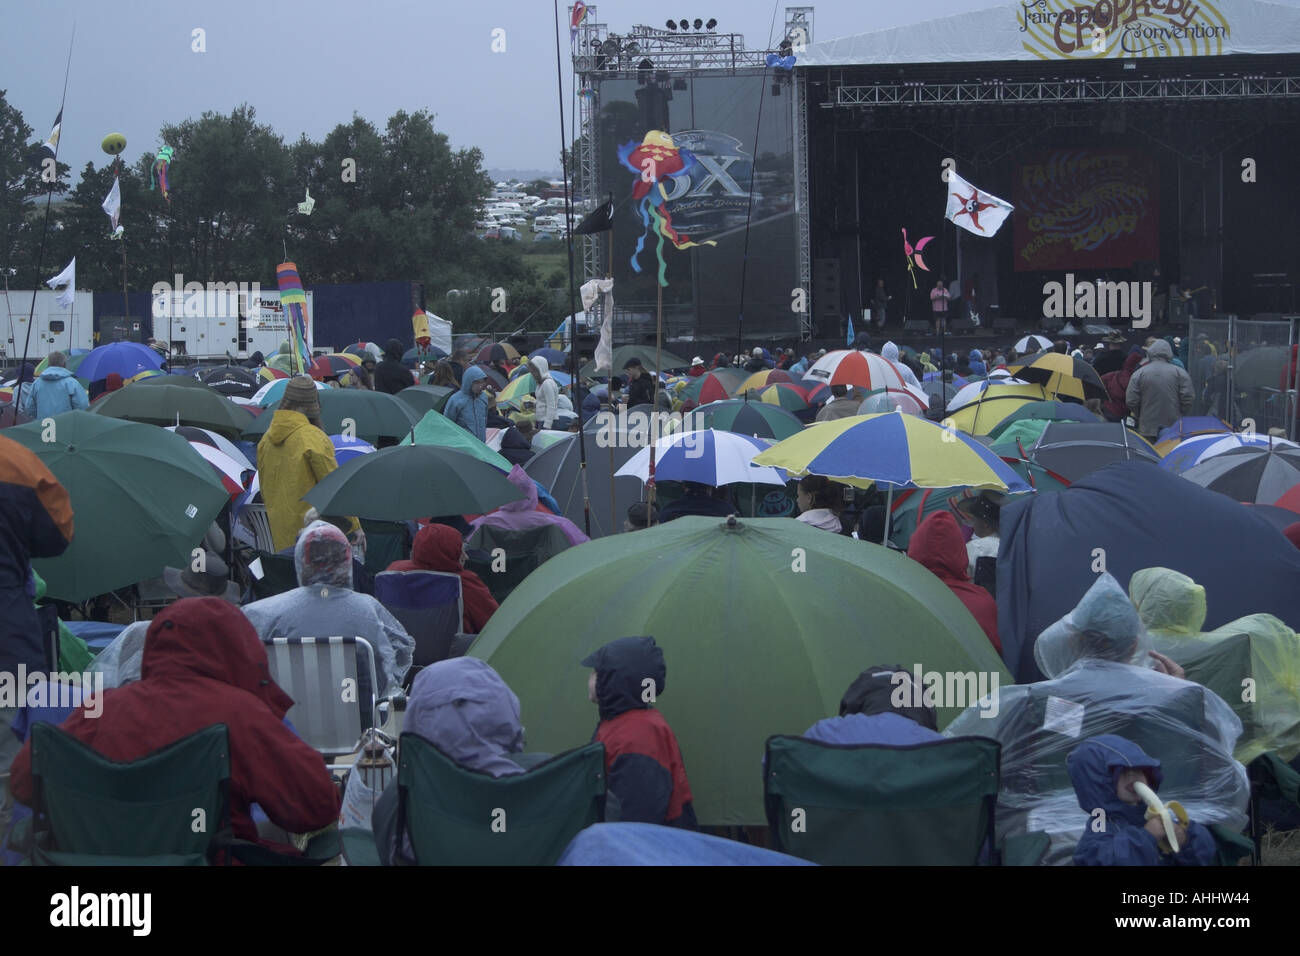 Audience at Cropredy Folk Festival during the rain 2005 - Stock Image